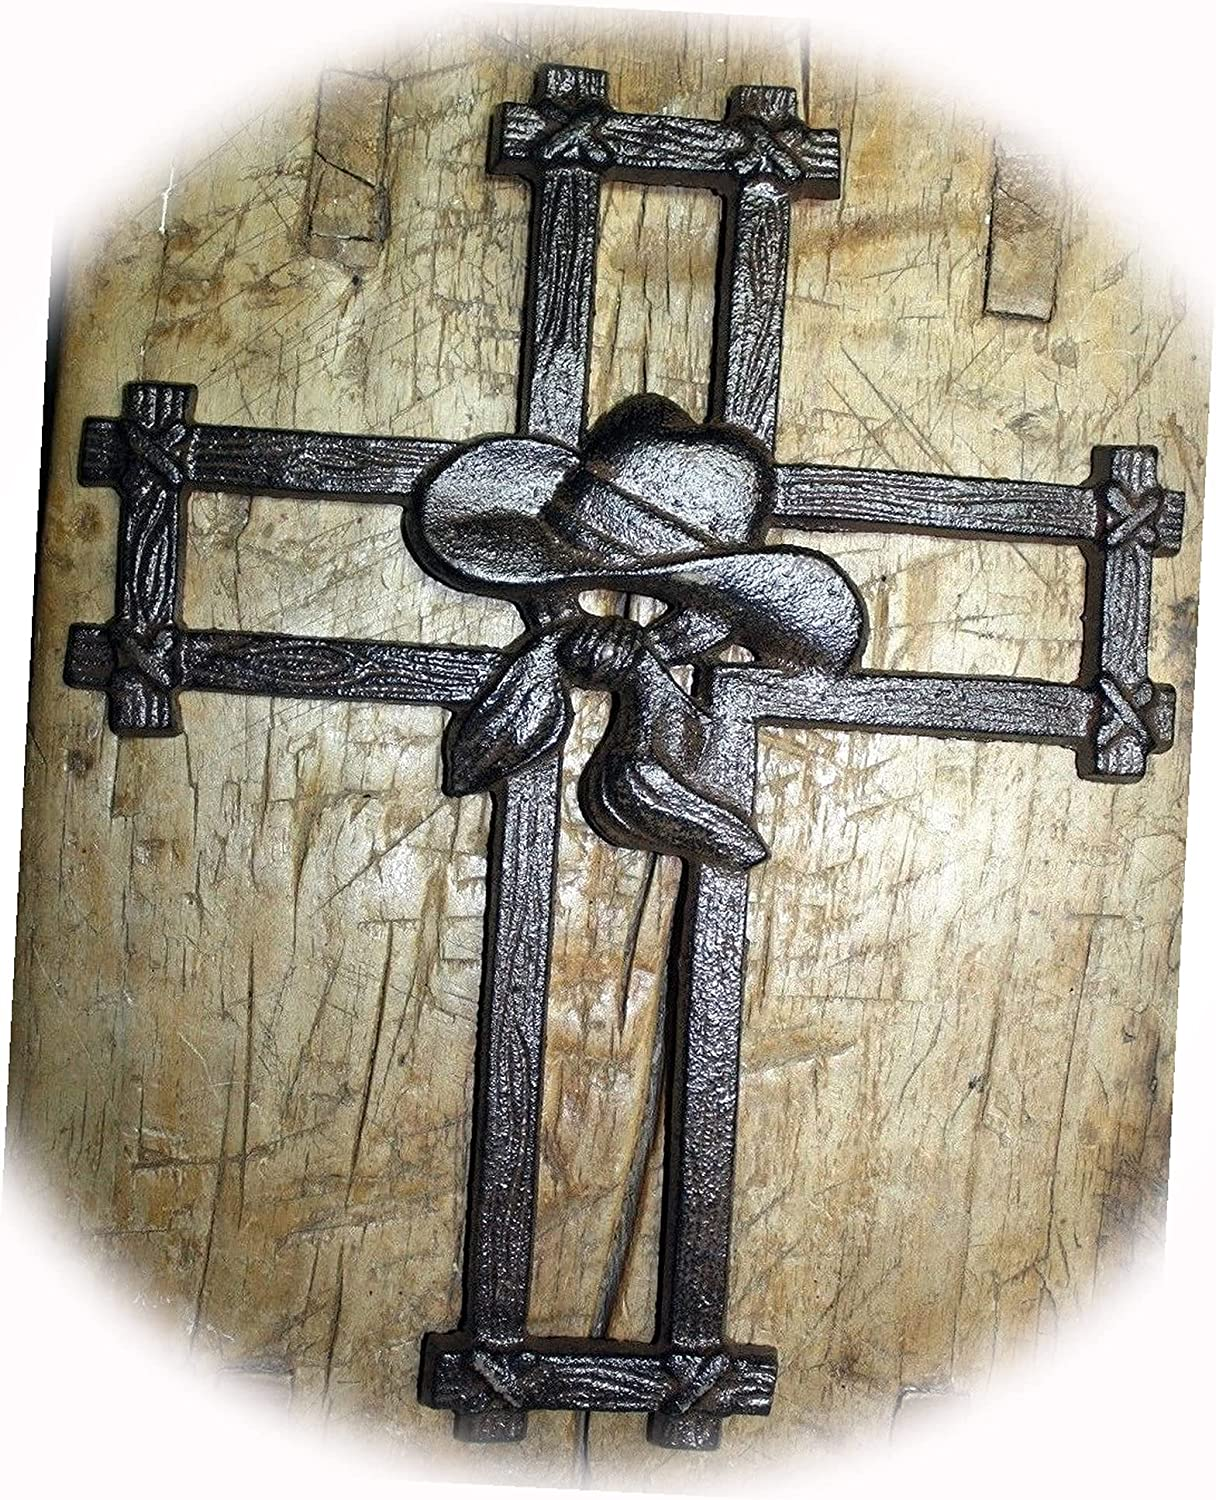 New Huge Cast Iron Chicago Mall Victorian Style Hat Wall Cross COYBOY Rustic Free shipping / New